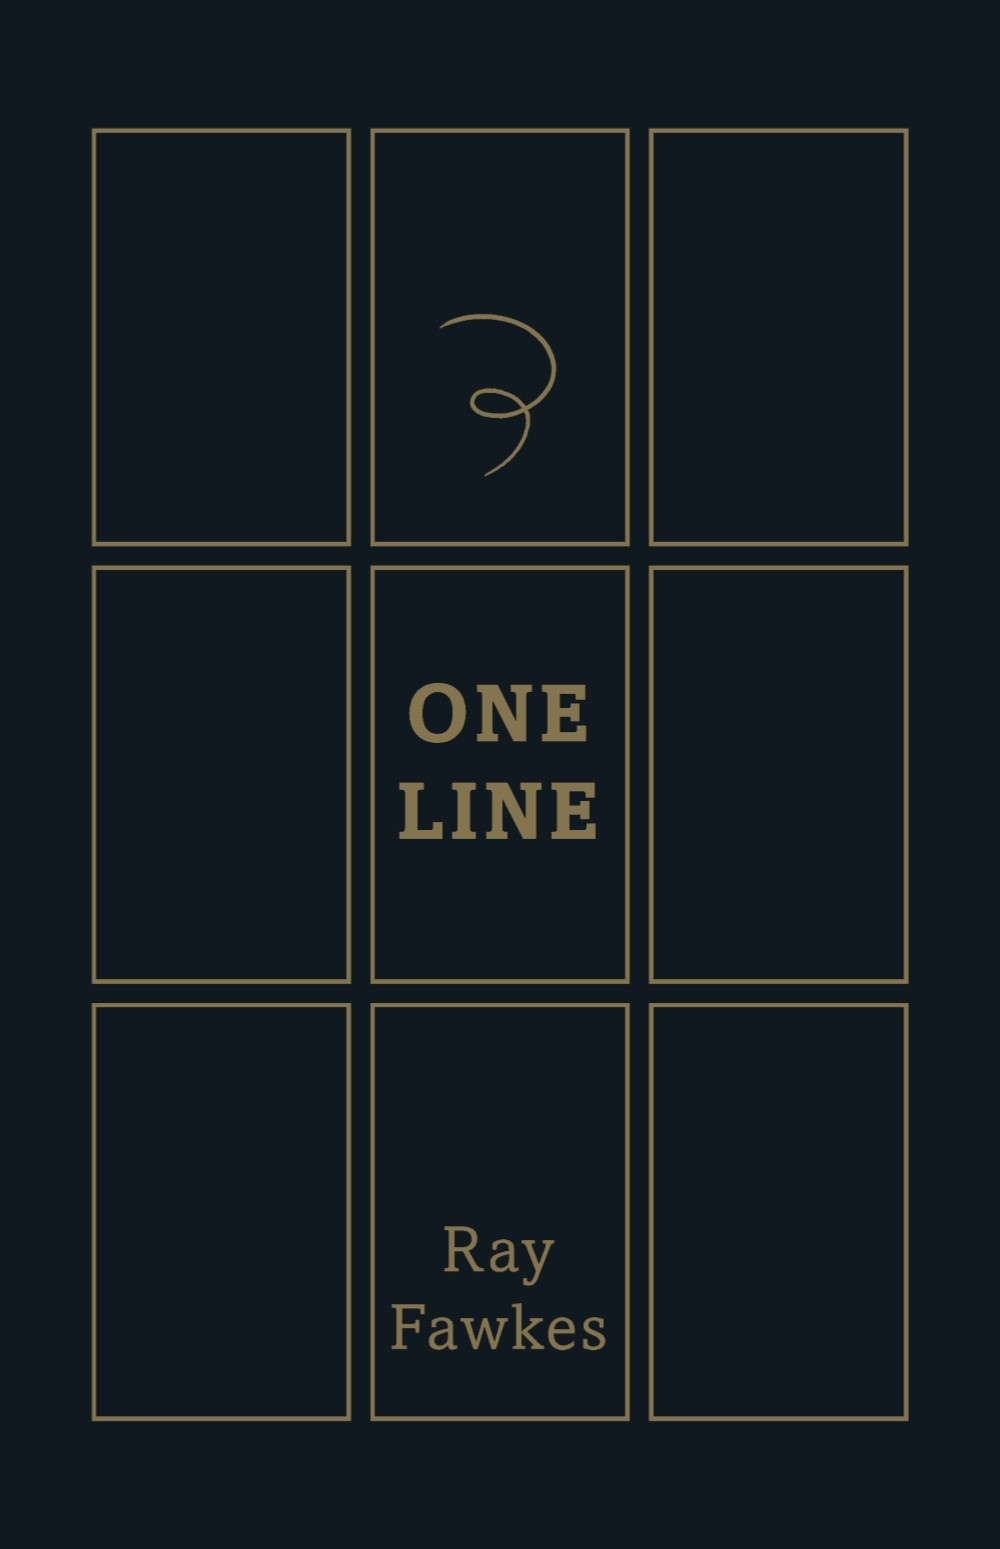 ONELINE-HC-MARKETING-001 ComicList: Oni Press New Releases for 07/21/2021